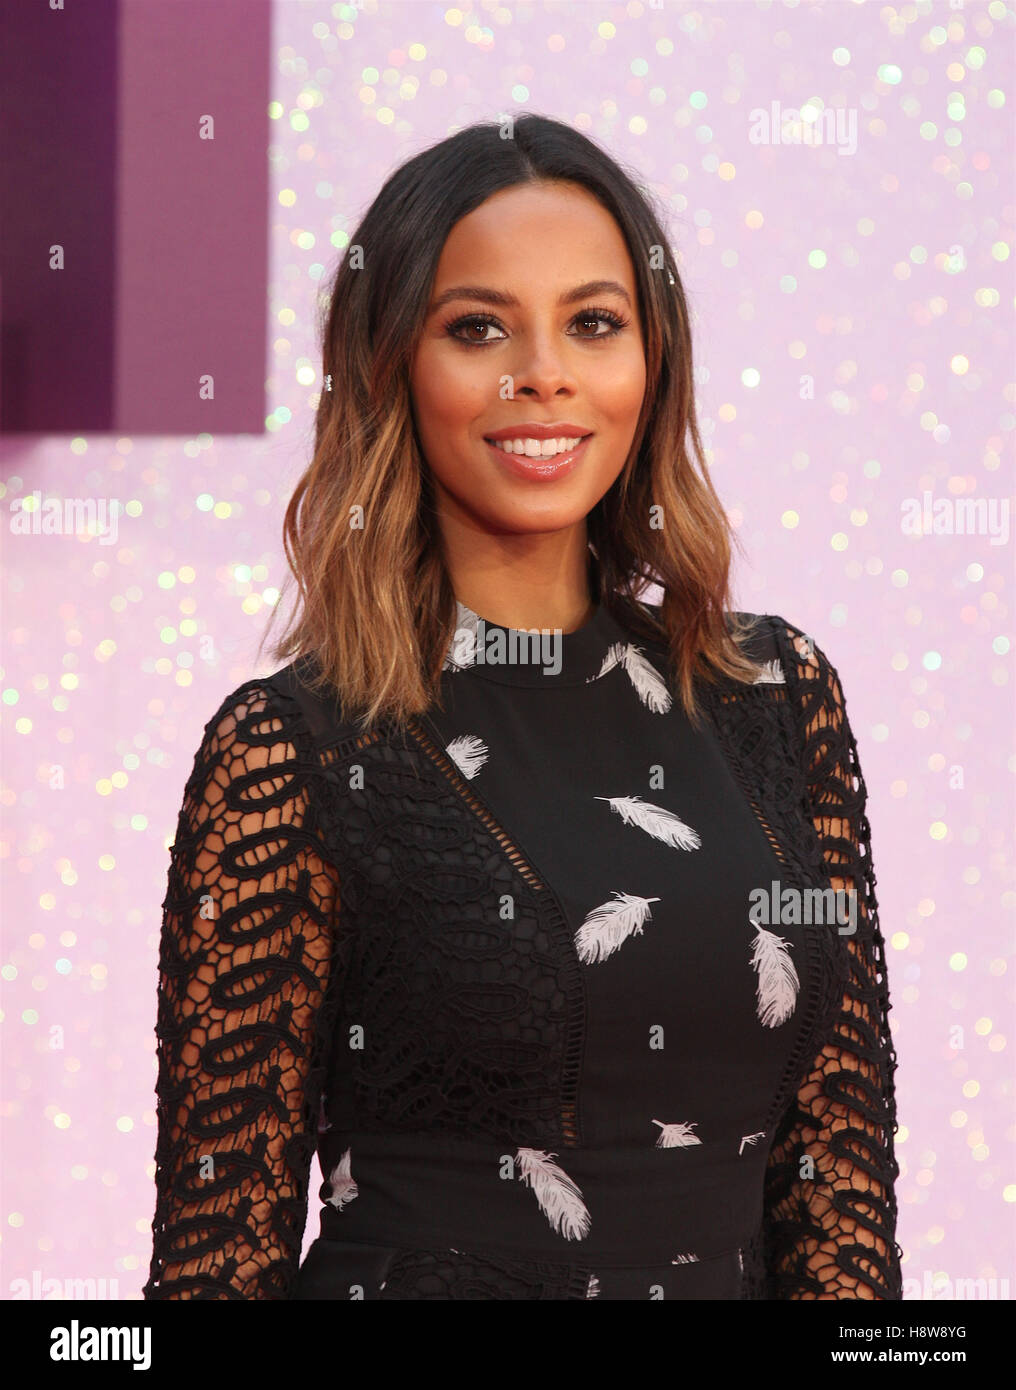 Rochelle Humes attends Bridget Jone's Baby film premiere London on 05 Sep, 2016 - Stock Image